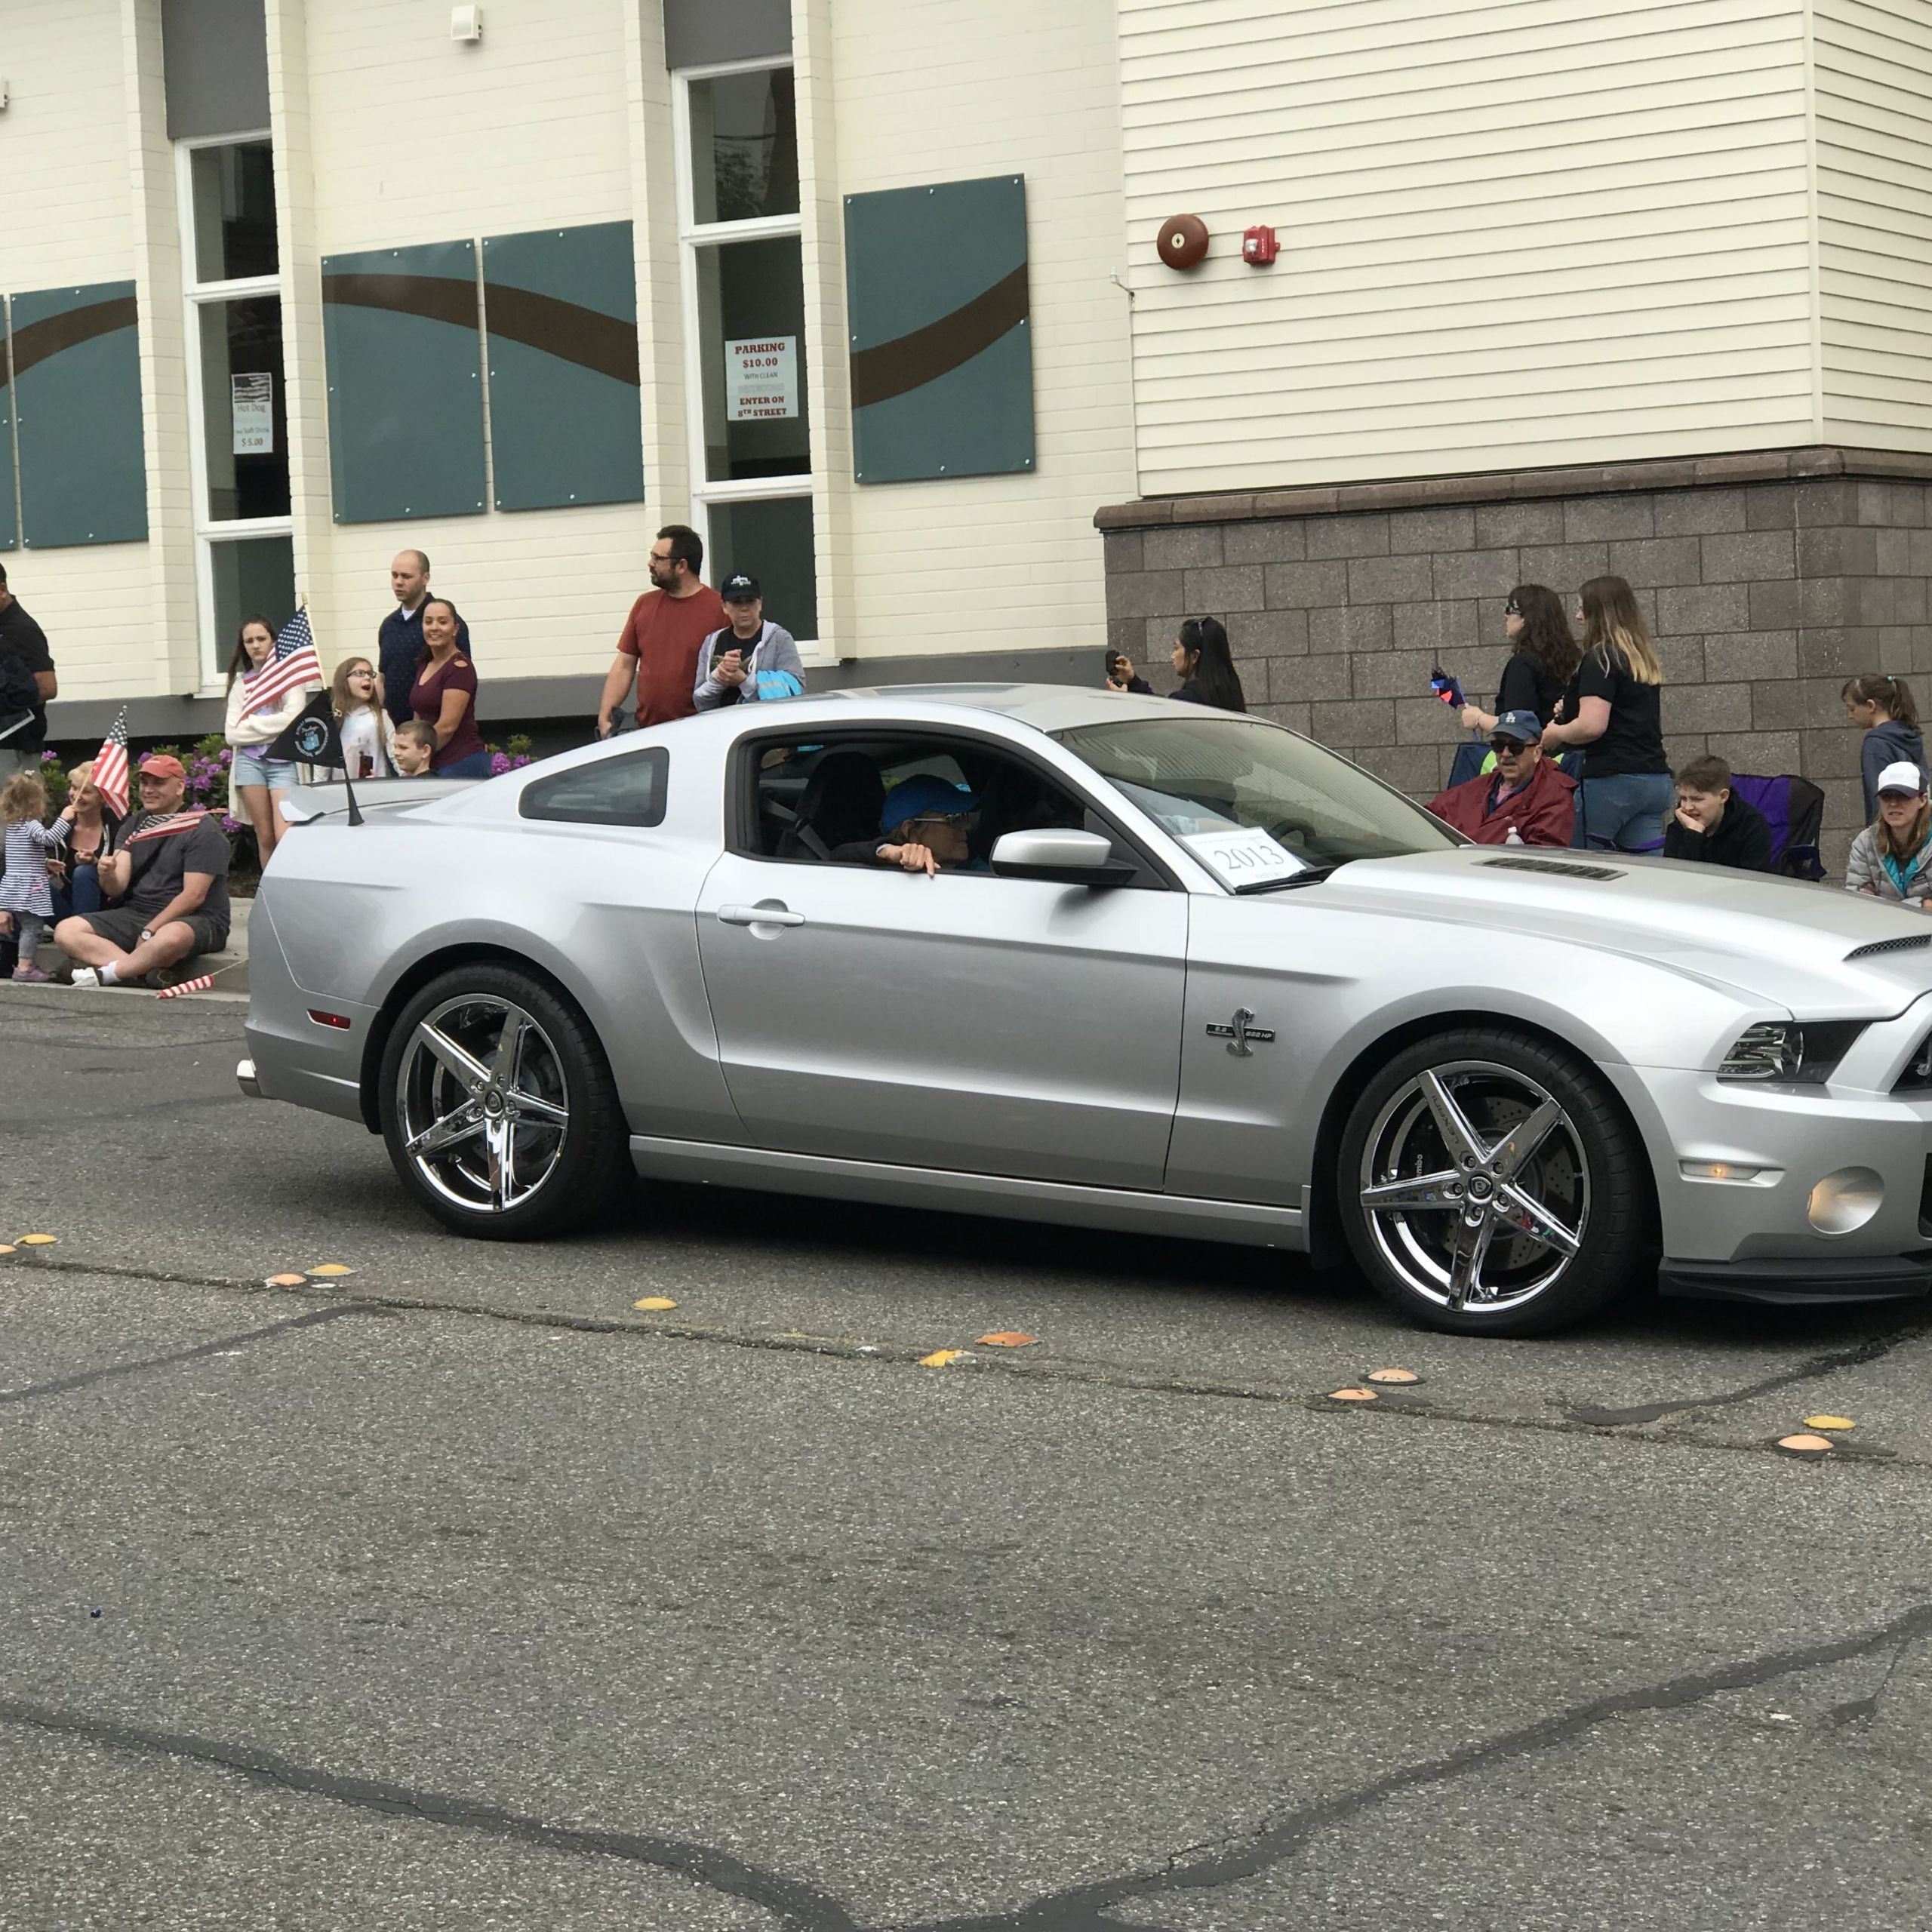 2013 Mustang Inspirational Pin by tony Ervin On Mustang